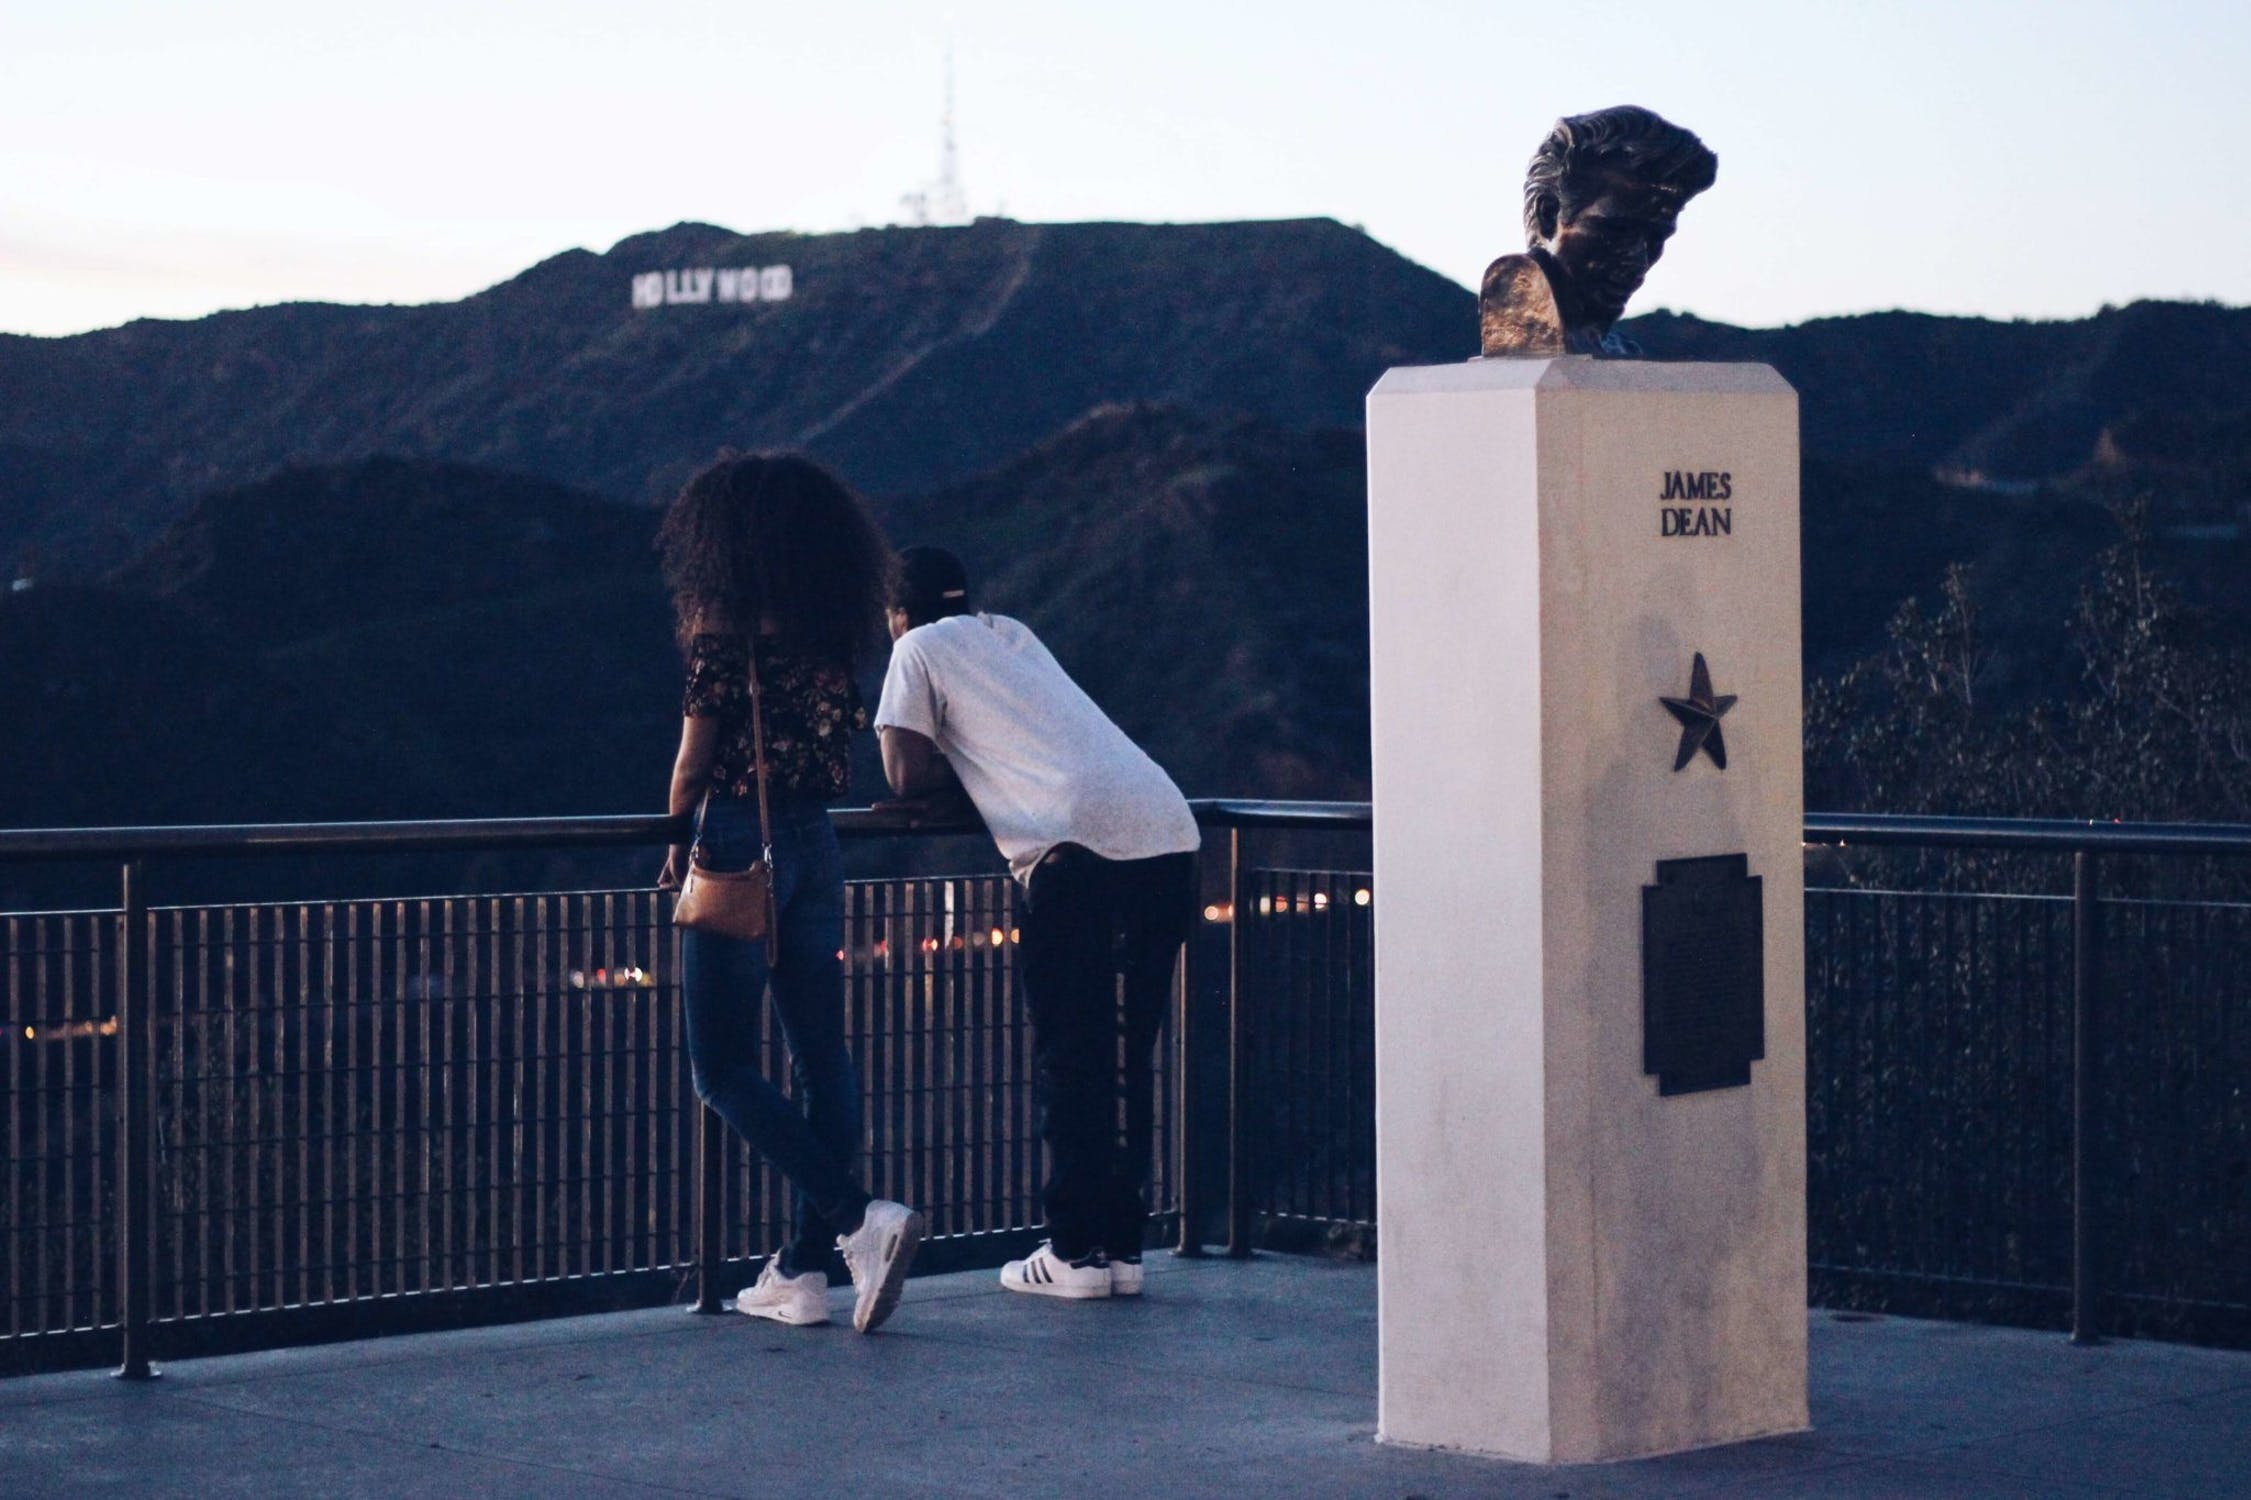 a woman (left) and man (right) stand in front of a James Dean statue and look towards the Hollywood sign on the mountains in Los Angeles.